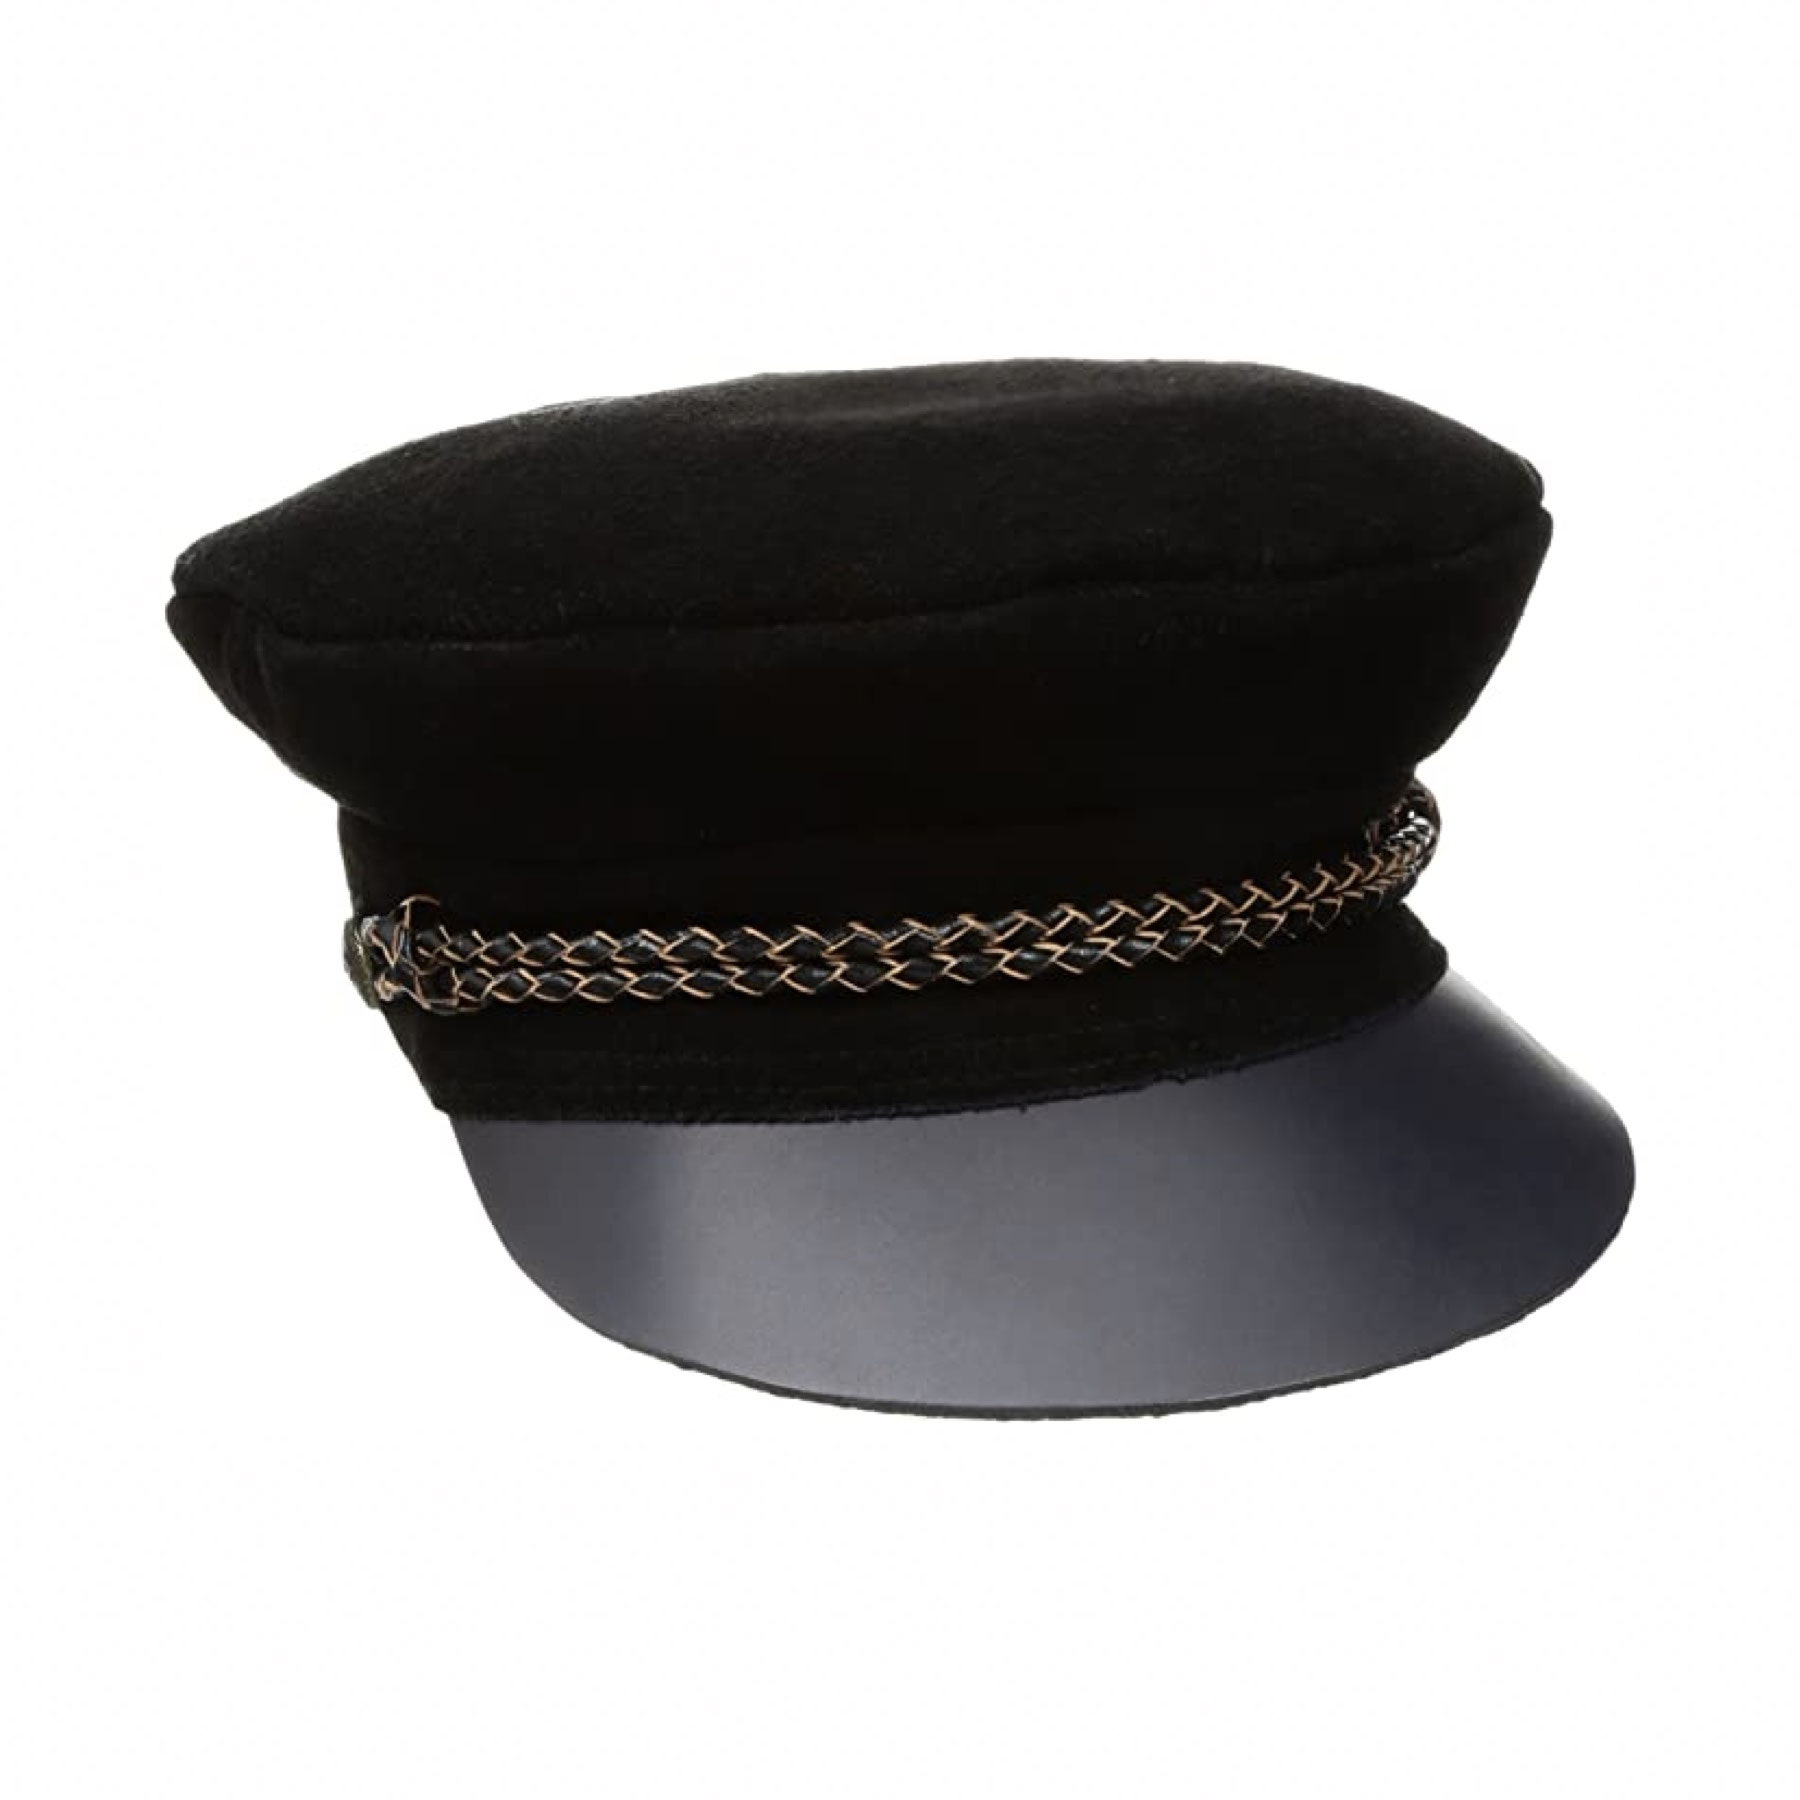 black hat with brim and gold chain